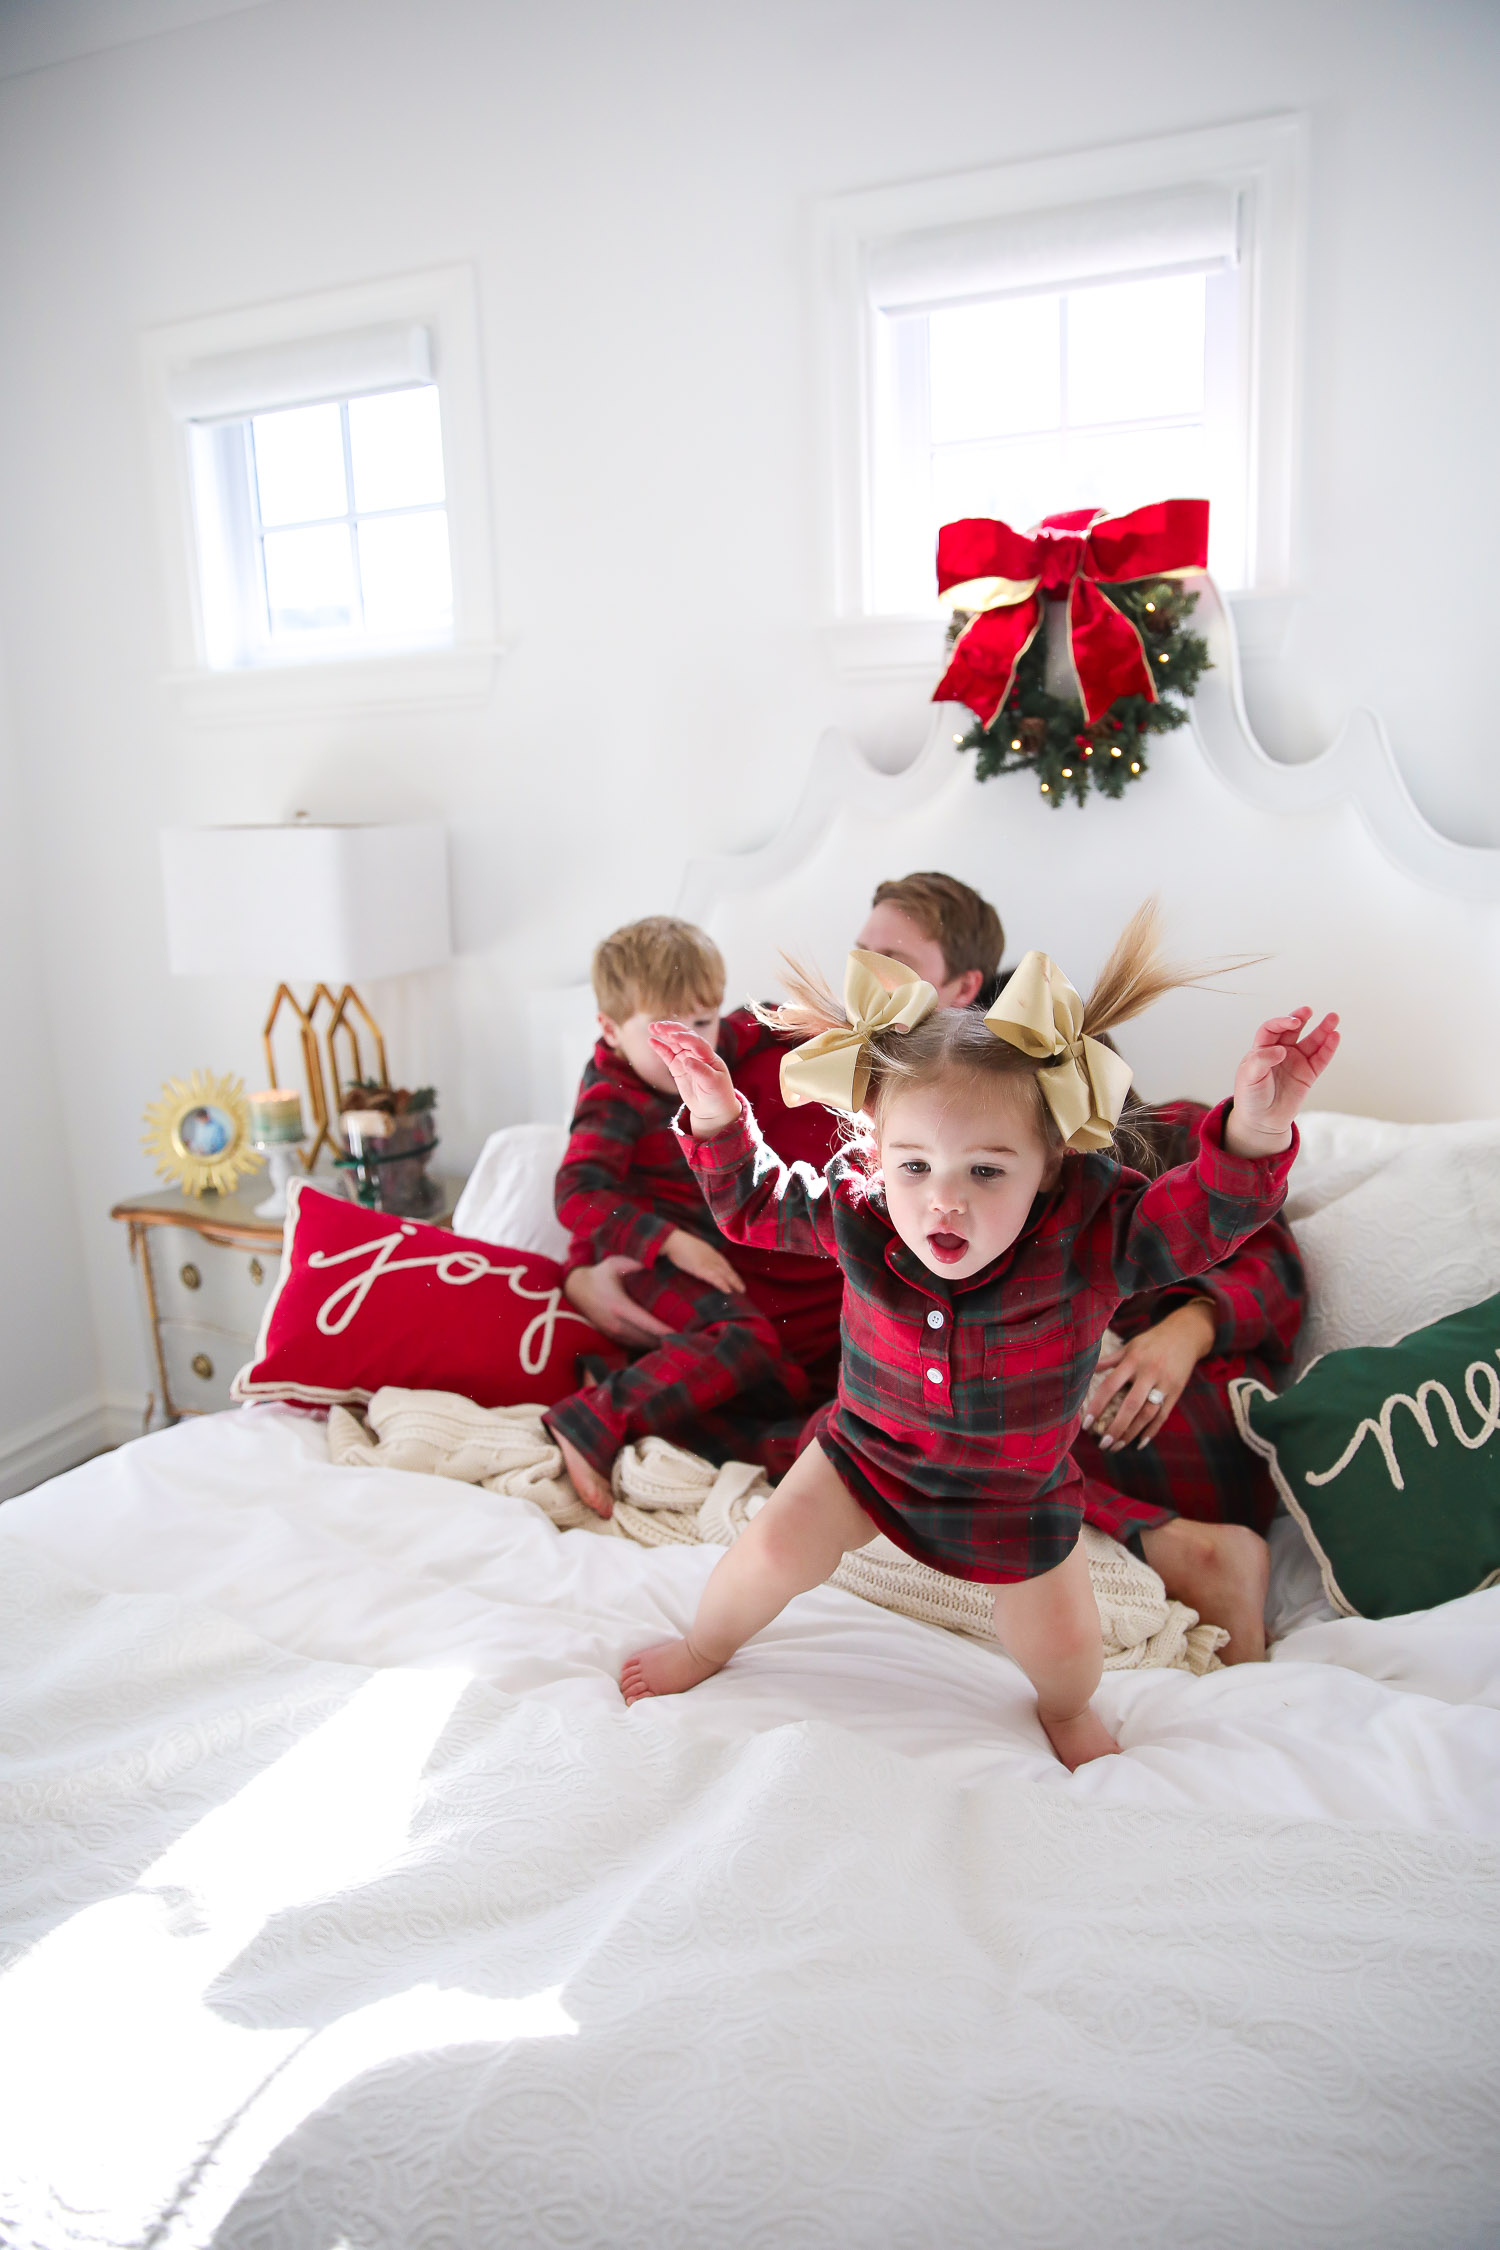 Matching Family Pajamas by popular US fashion blog, The Sweetest Thing: image of a family sitting on a bed with white bedding, a joy throw pillow, a merry throw pillow and a mini Christmas wreath hanging on the headboard and wearing a The Company Store Family Flannel Company Cotton™ Womens Pajama Set, The Company Store Family Flannel Company Cotton™ Girls' Sleepshirt, The Company Store Family Flannel Company Cotton™ Kids' Pajama Set, The Company Store Family Flannel Company Cotton™ Mens Pajama Set, and The Company Store Family Flannel Company Cotton™ Dog Pajamas.